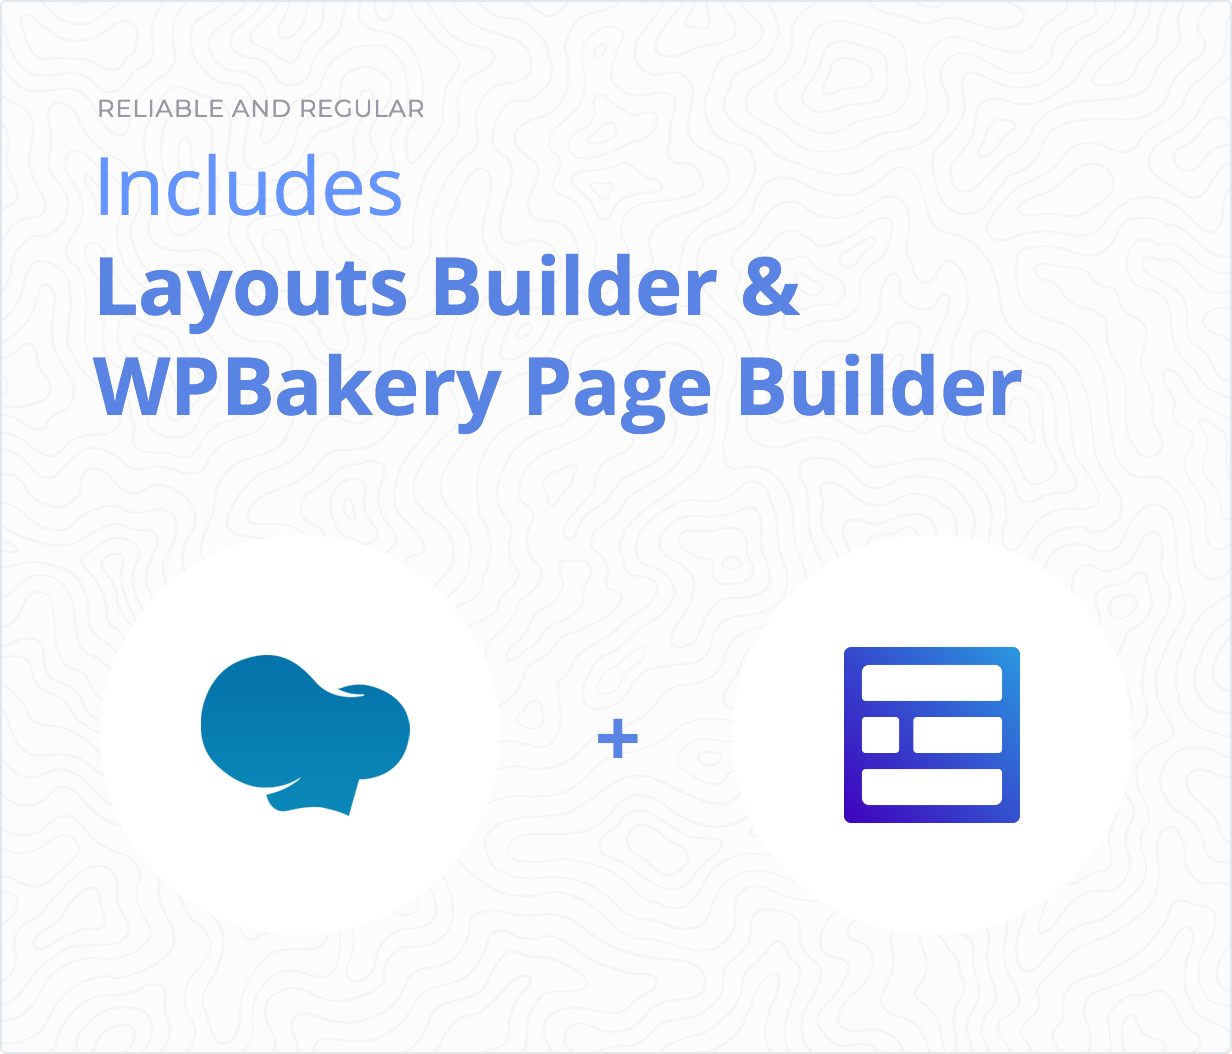 Layouts Builder include and WPbakery Page Builder include